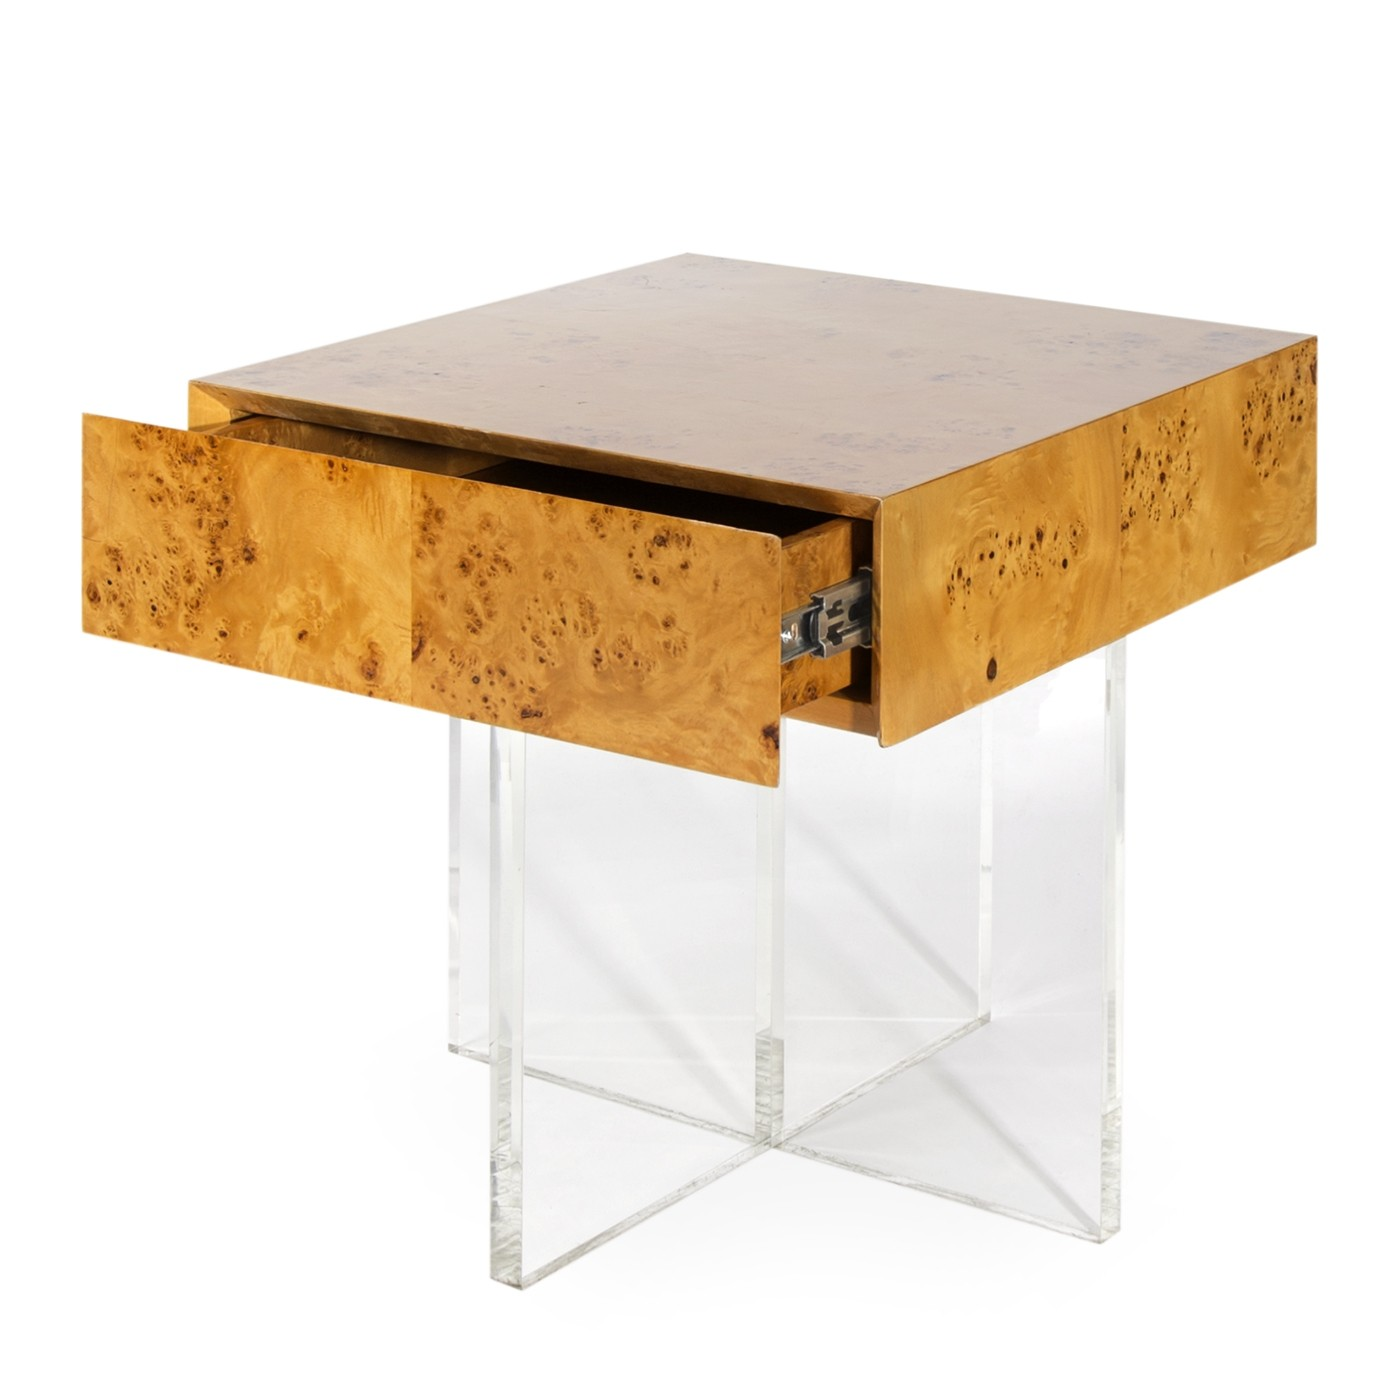 jonathan adler bond end table burled mappa candelabra inc burl wood accent acrylic stacking tables floor lamps toronto garden laptop round mosaic outdoor wooden bedside cabinets